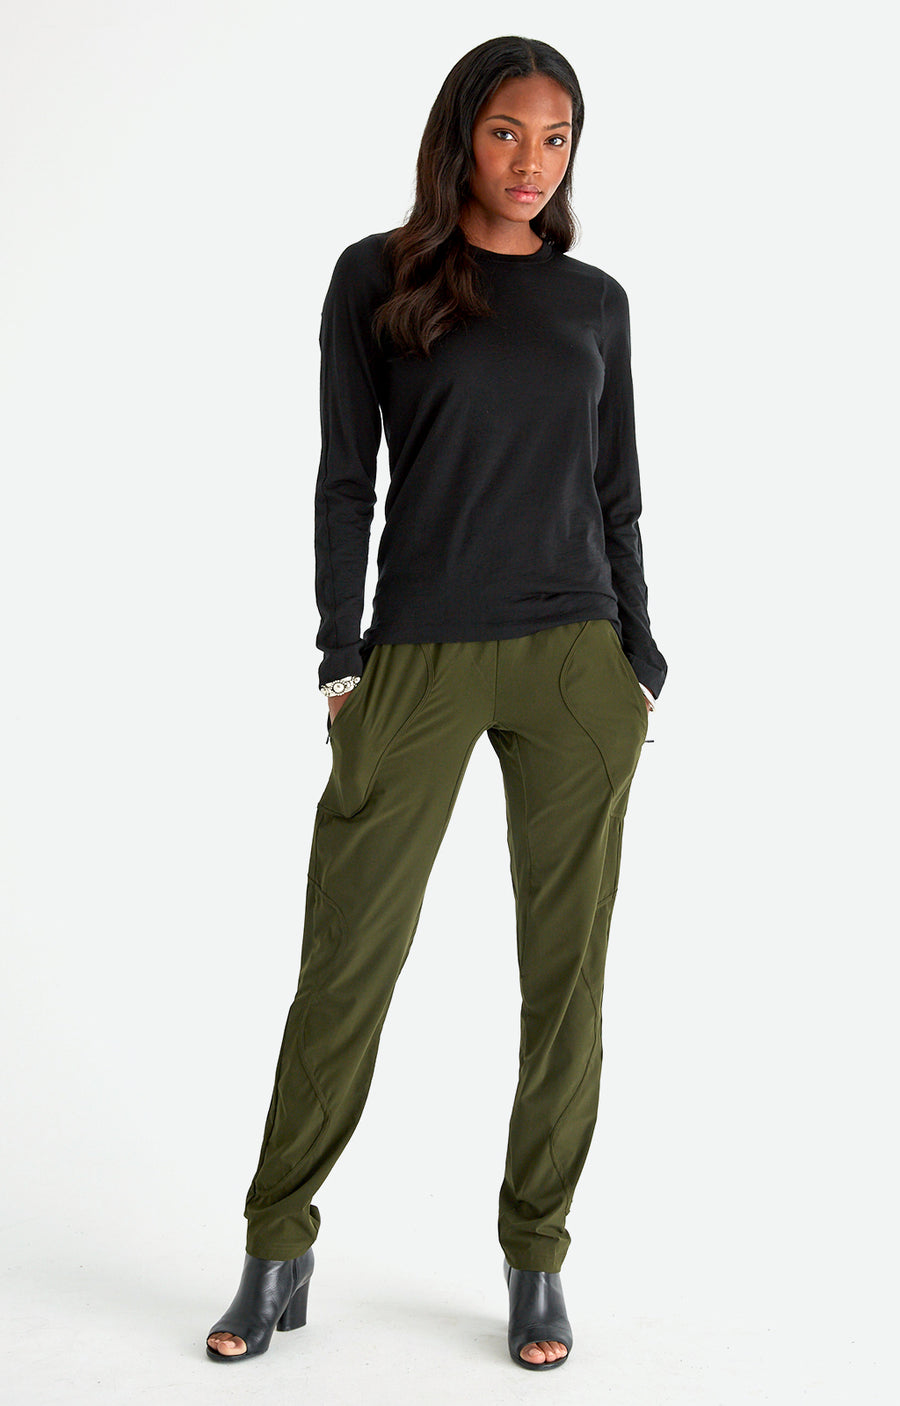 Wild – Beautiful Craftsmanship, Travel Utility Pants in Dark Green